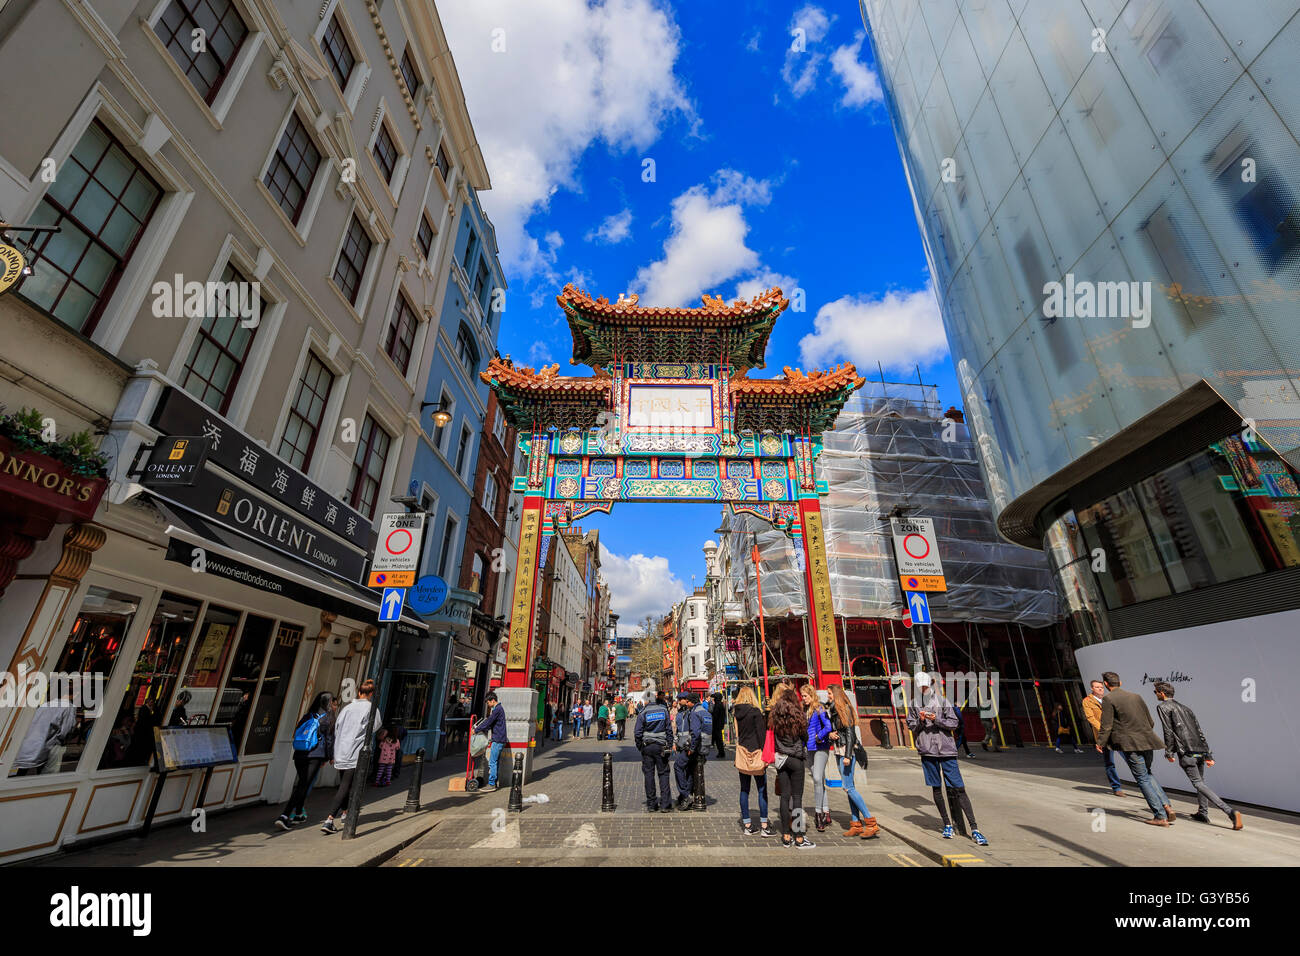 London, APR 17: The famous China Town on APR 17, 2016 at London - Stock Image